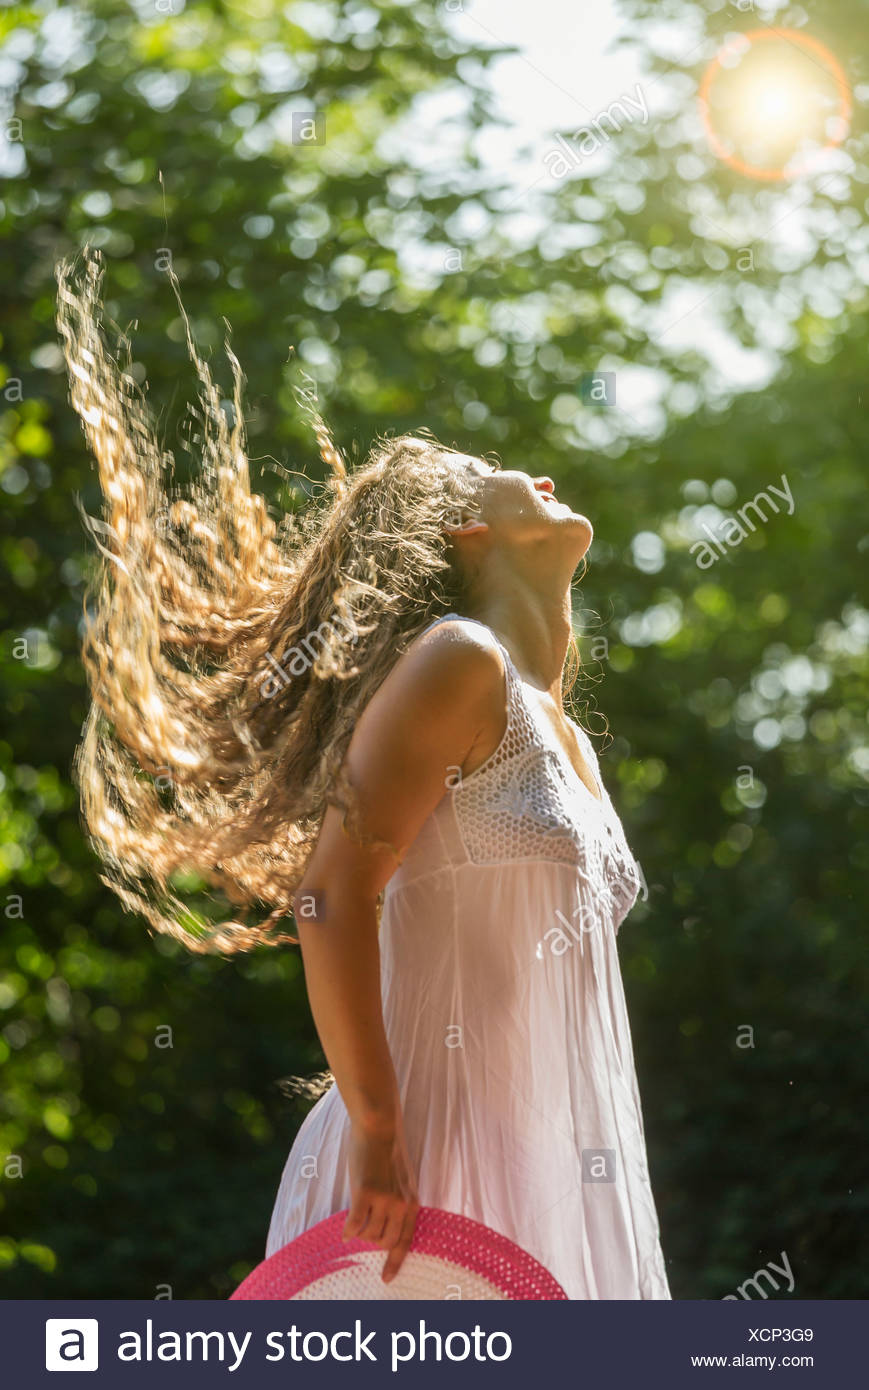 Teenage girl wearing white sundress tossing long hair, Prague, Czech Republic - Stock Image